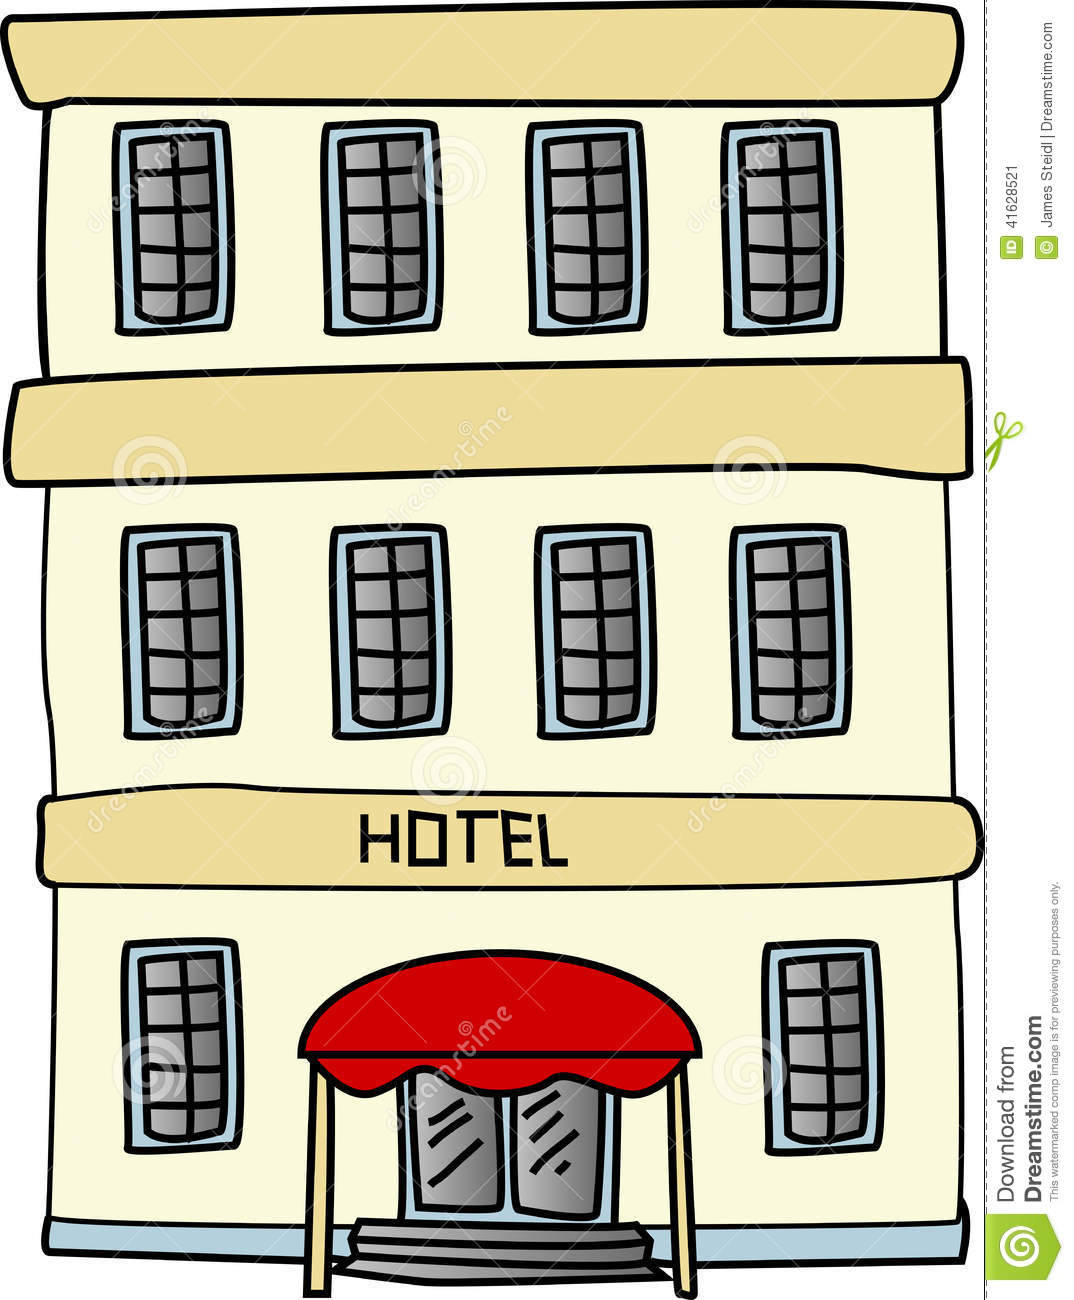 Hotel cartoon